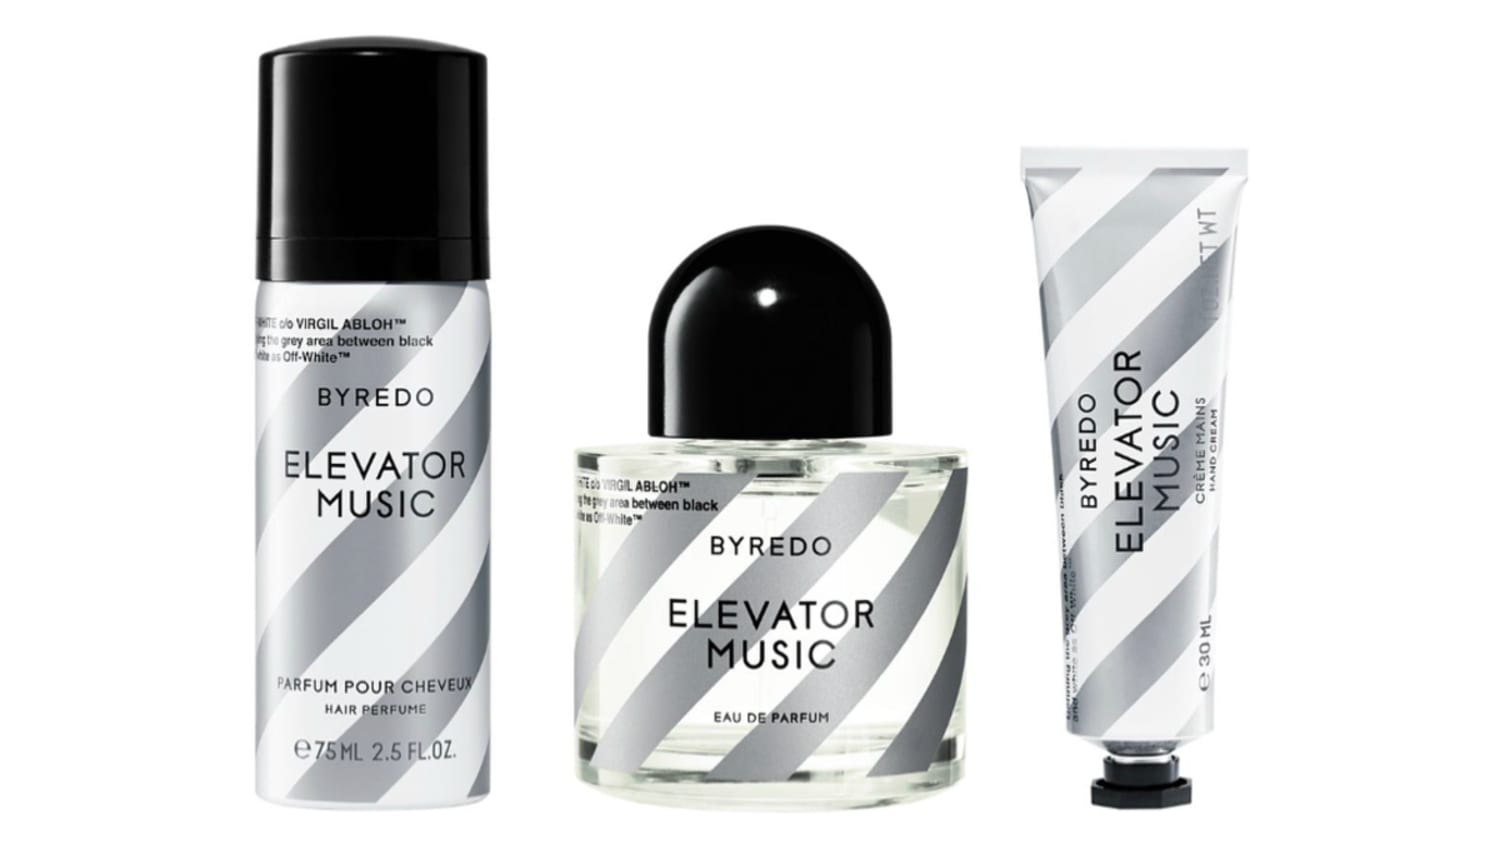 Elevator Music by Byredo and Off White